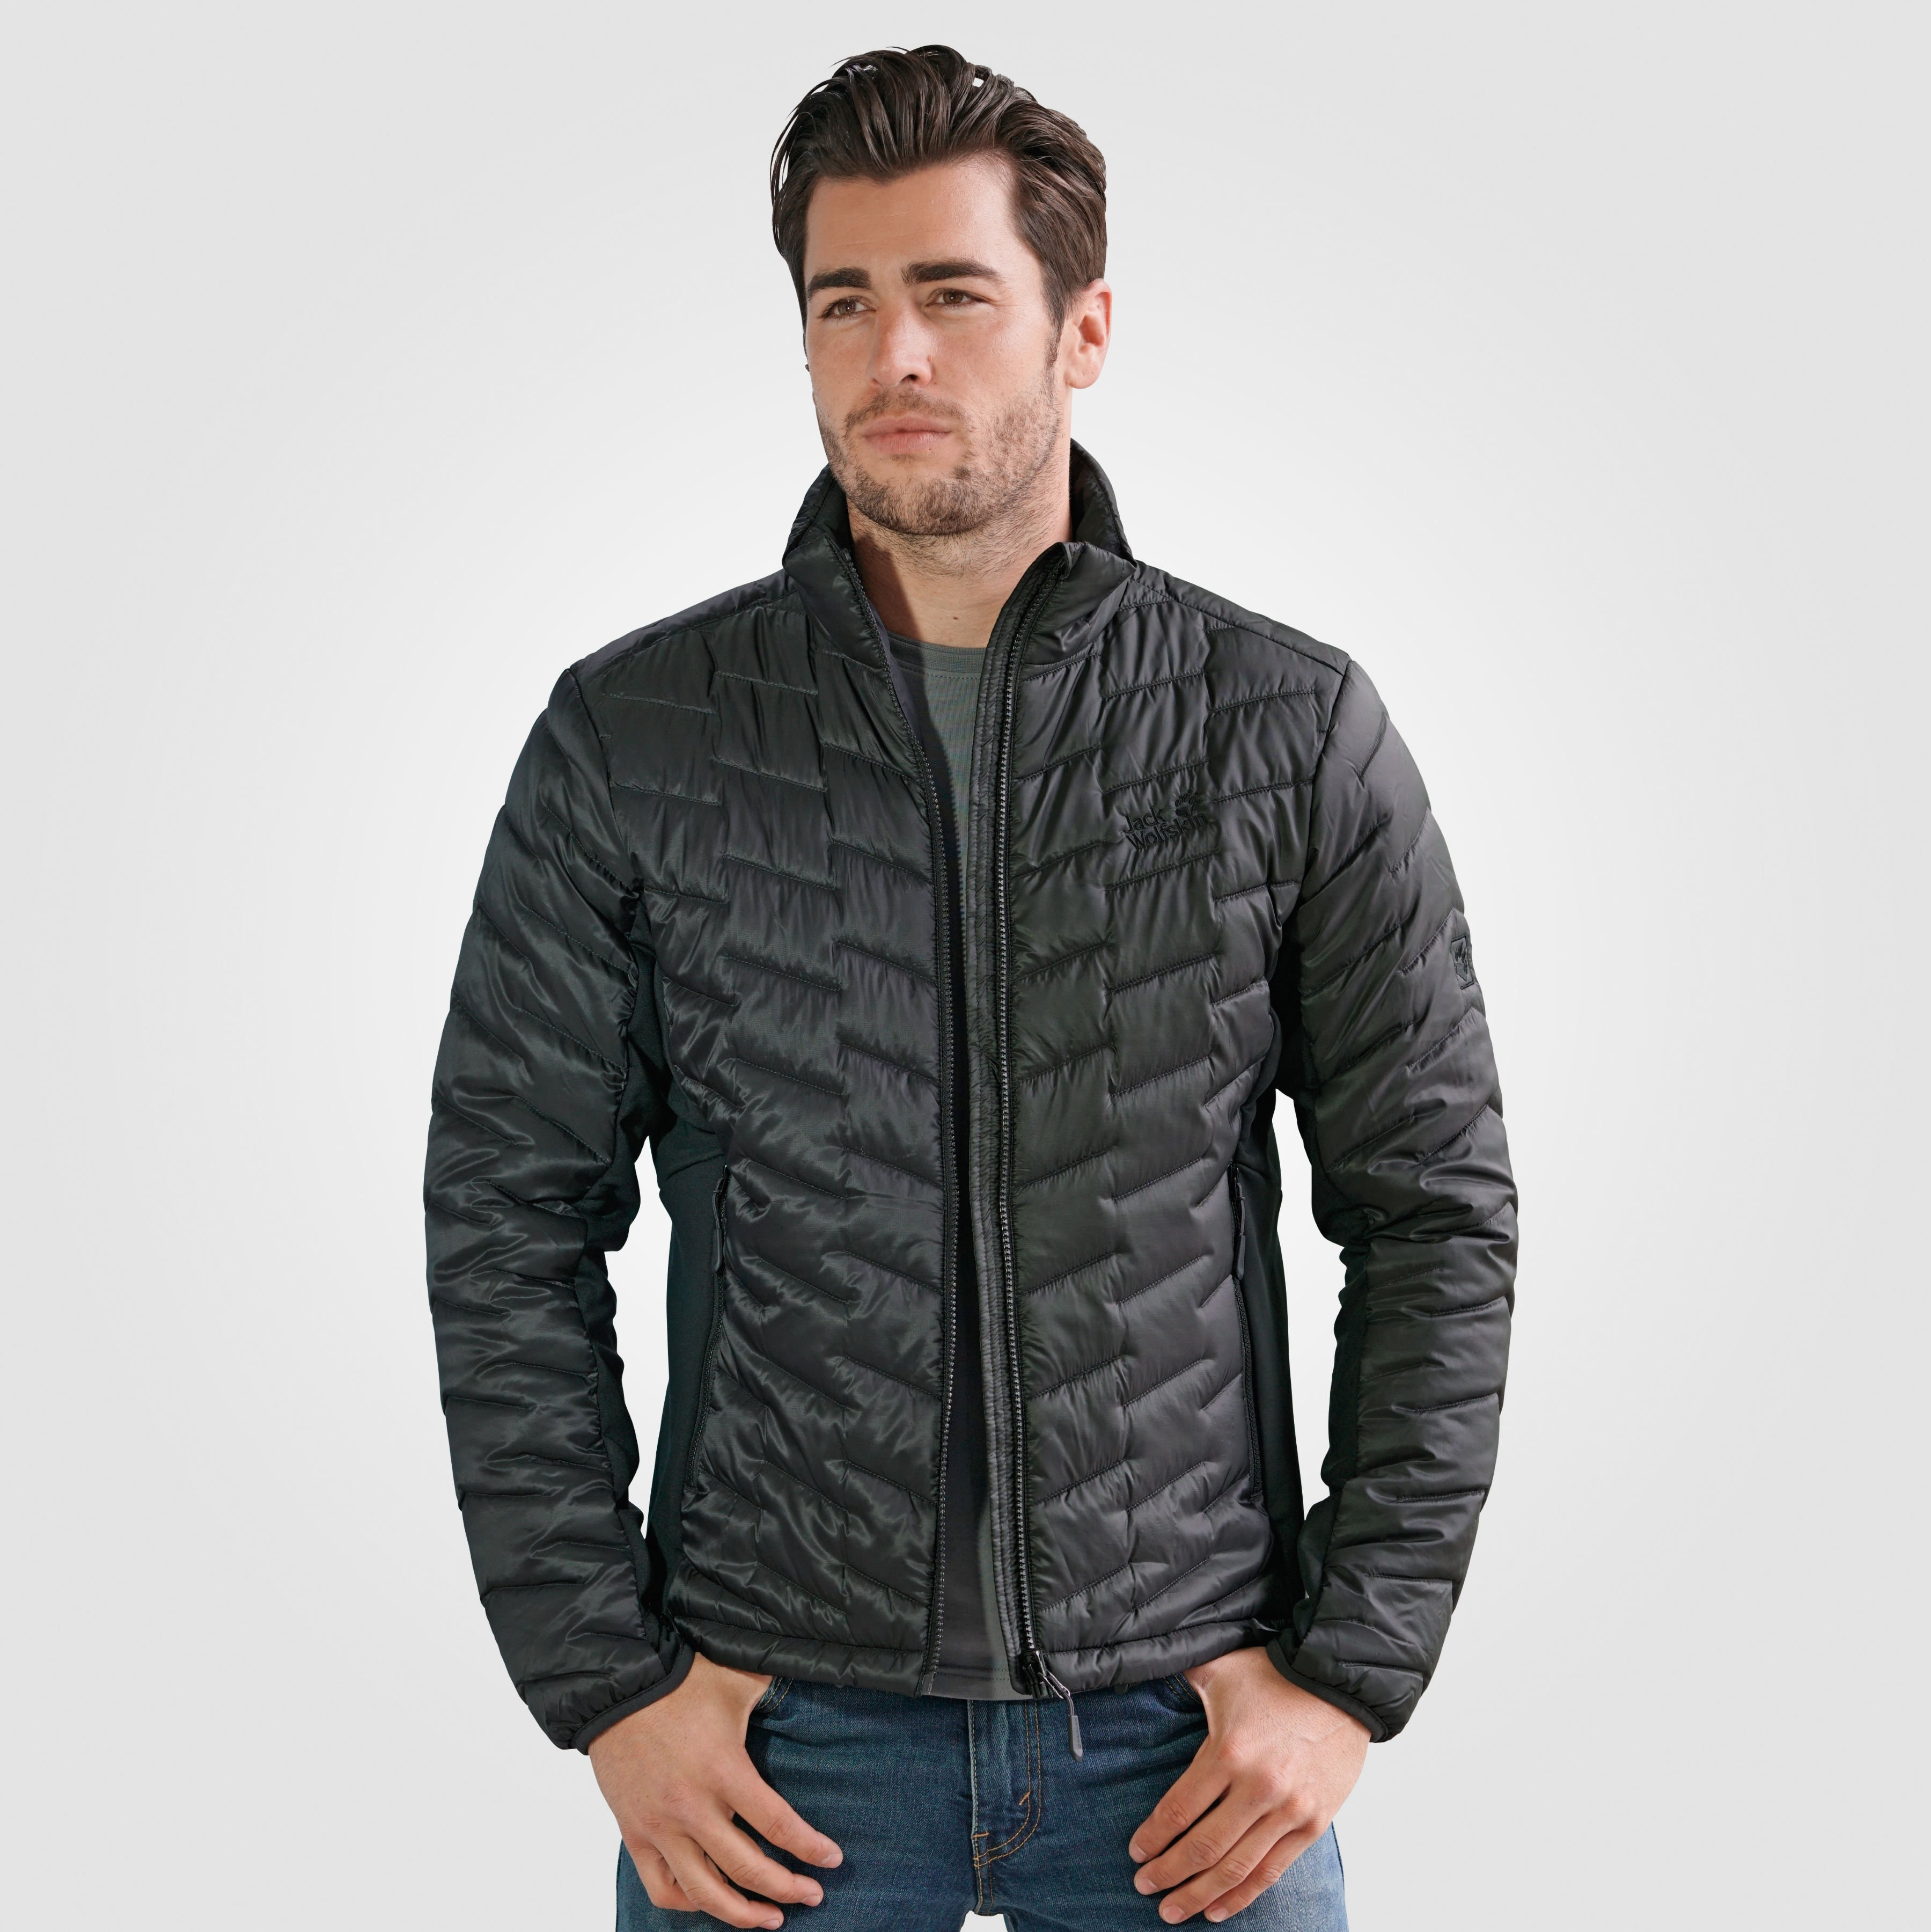 cheapest store pretty cool Jack Wolfskin Herren Steppjacke Ice water